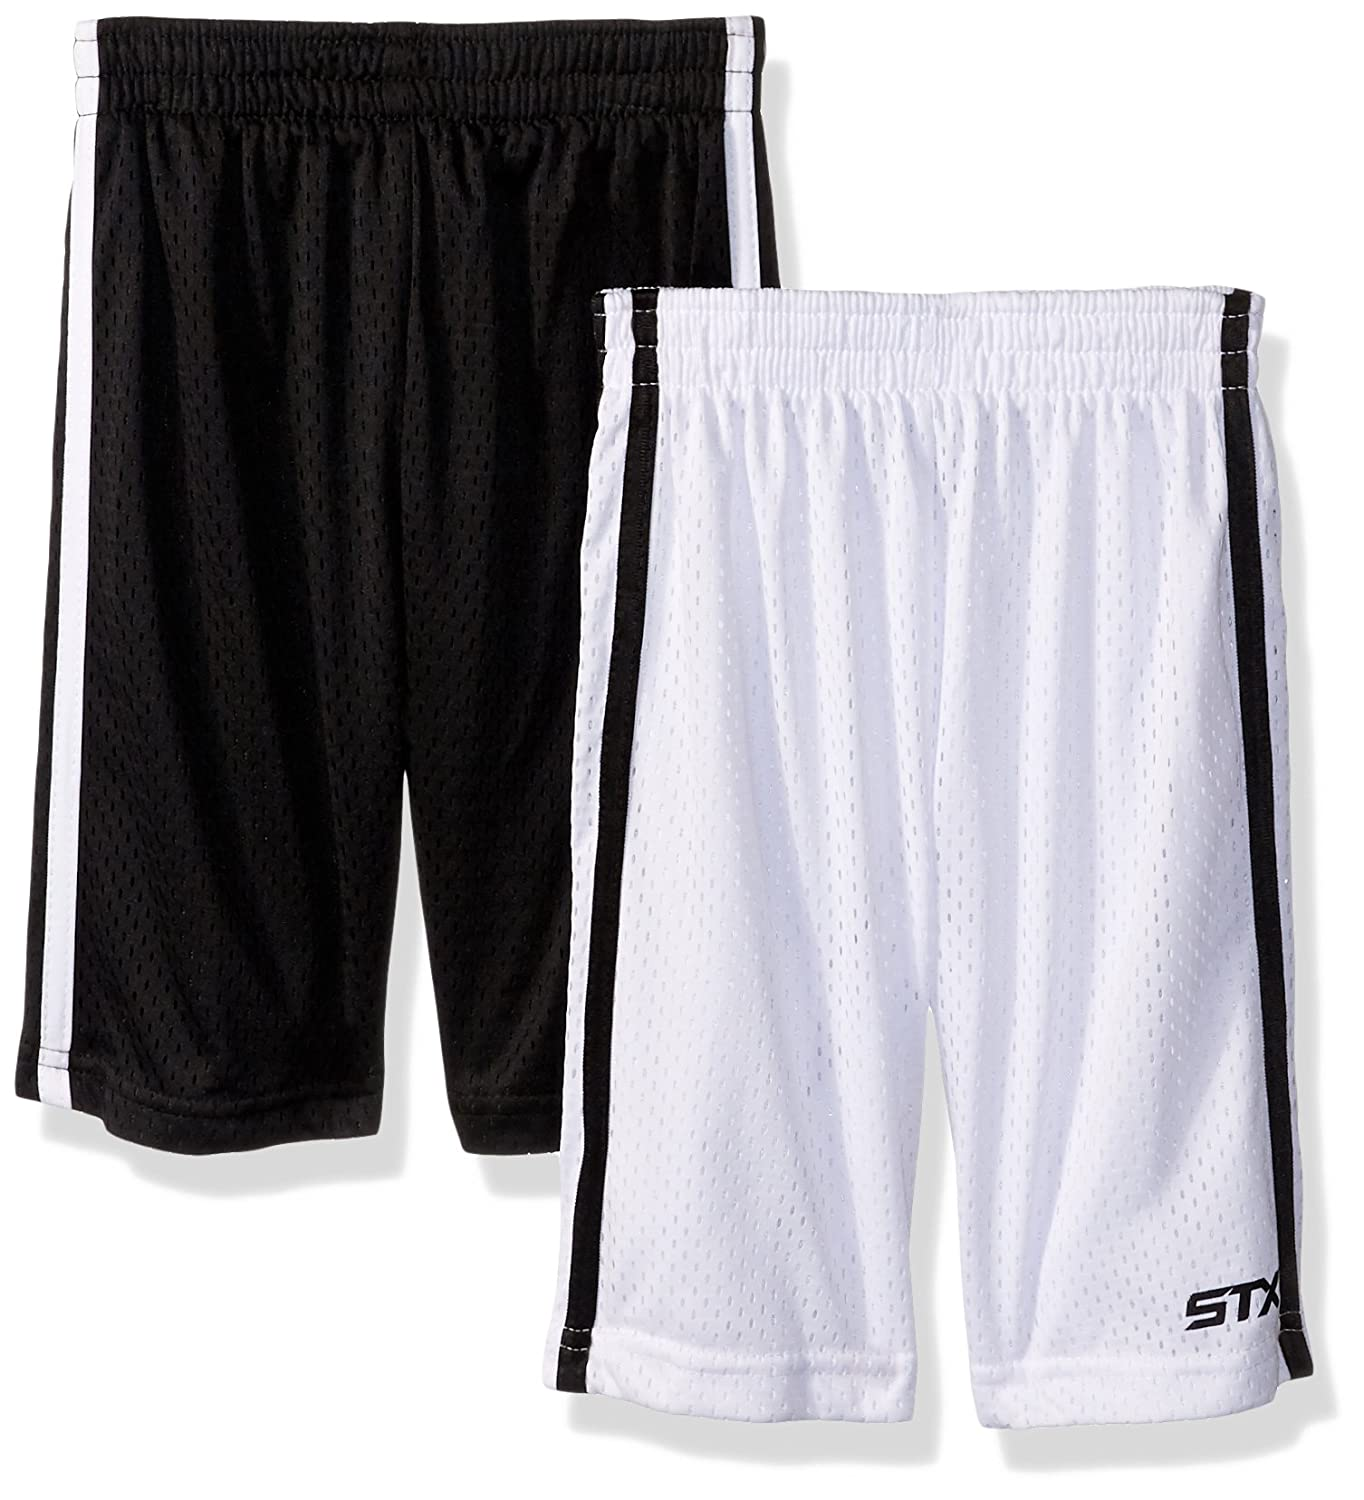 STX Fashion SHORTS ボーイズ